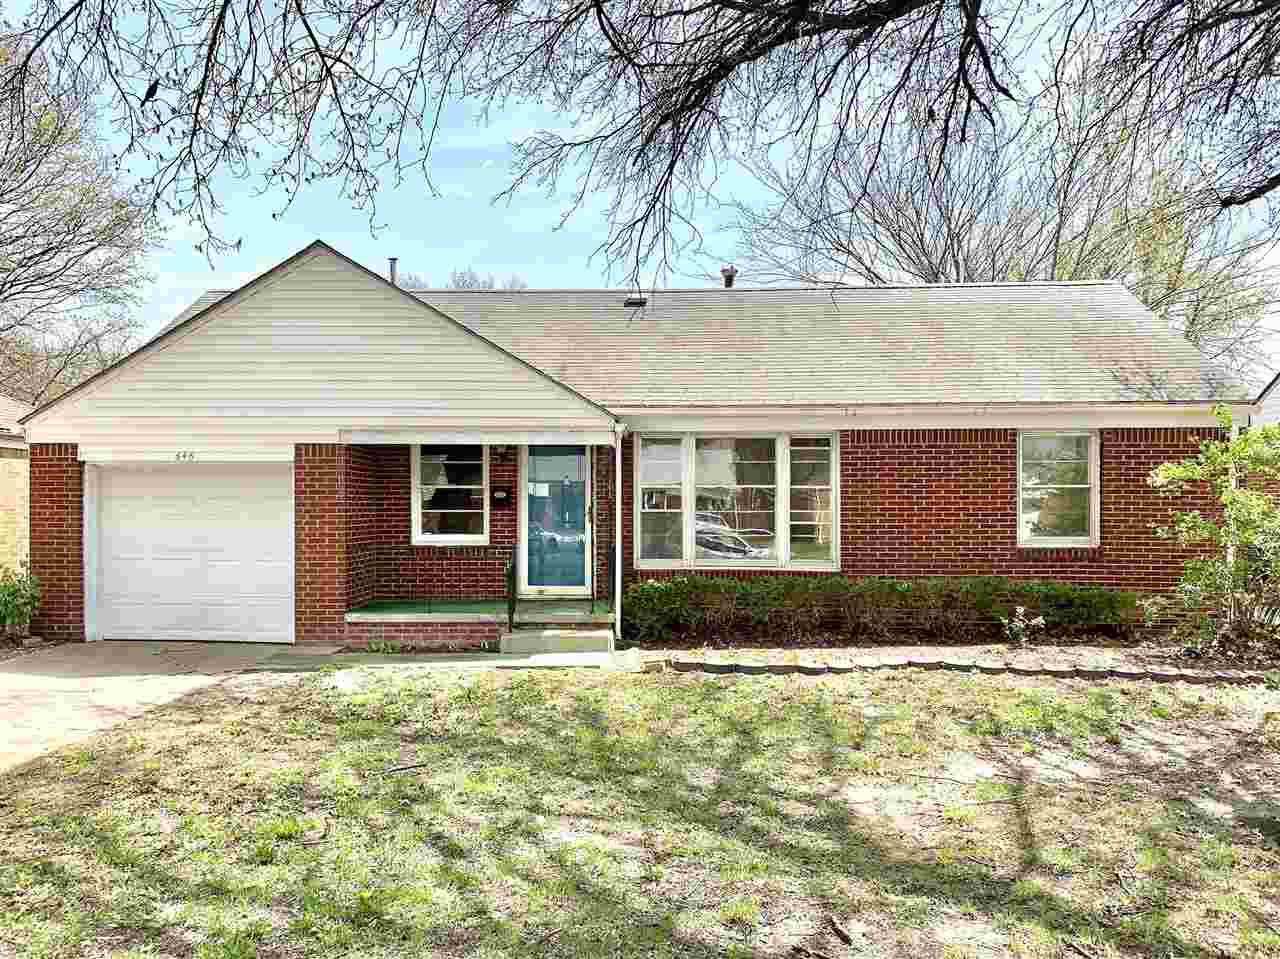 Charming 3 bed, 1 bath ranch home in east Wichita. This home is perfect for an investor or first tim